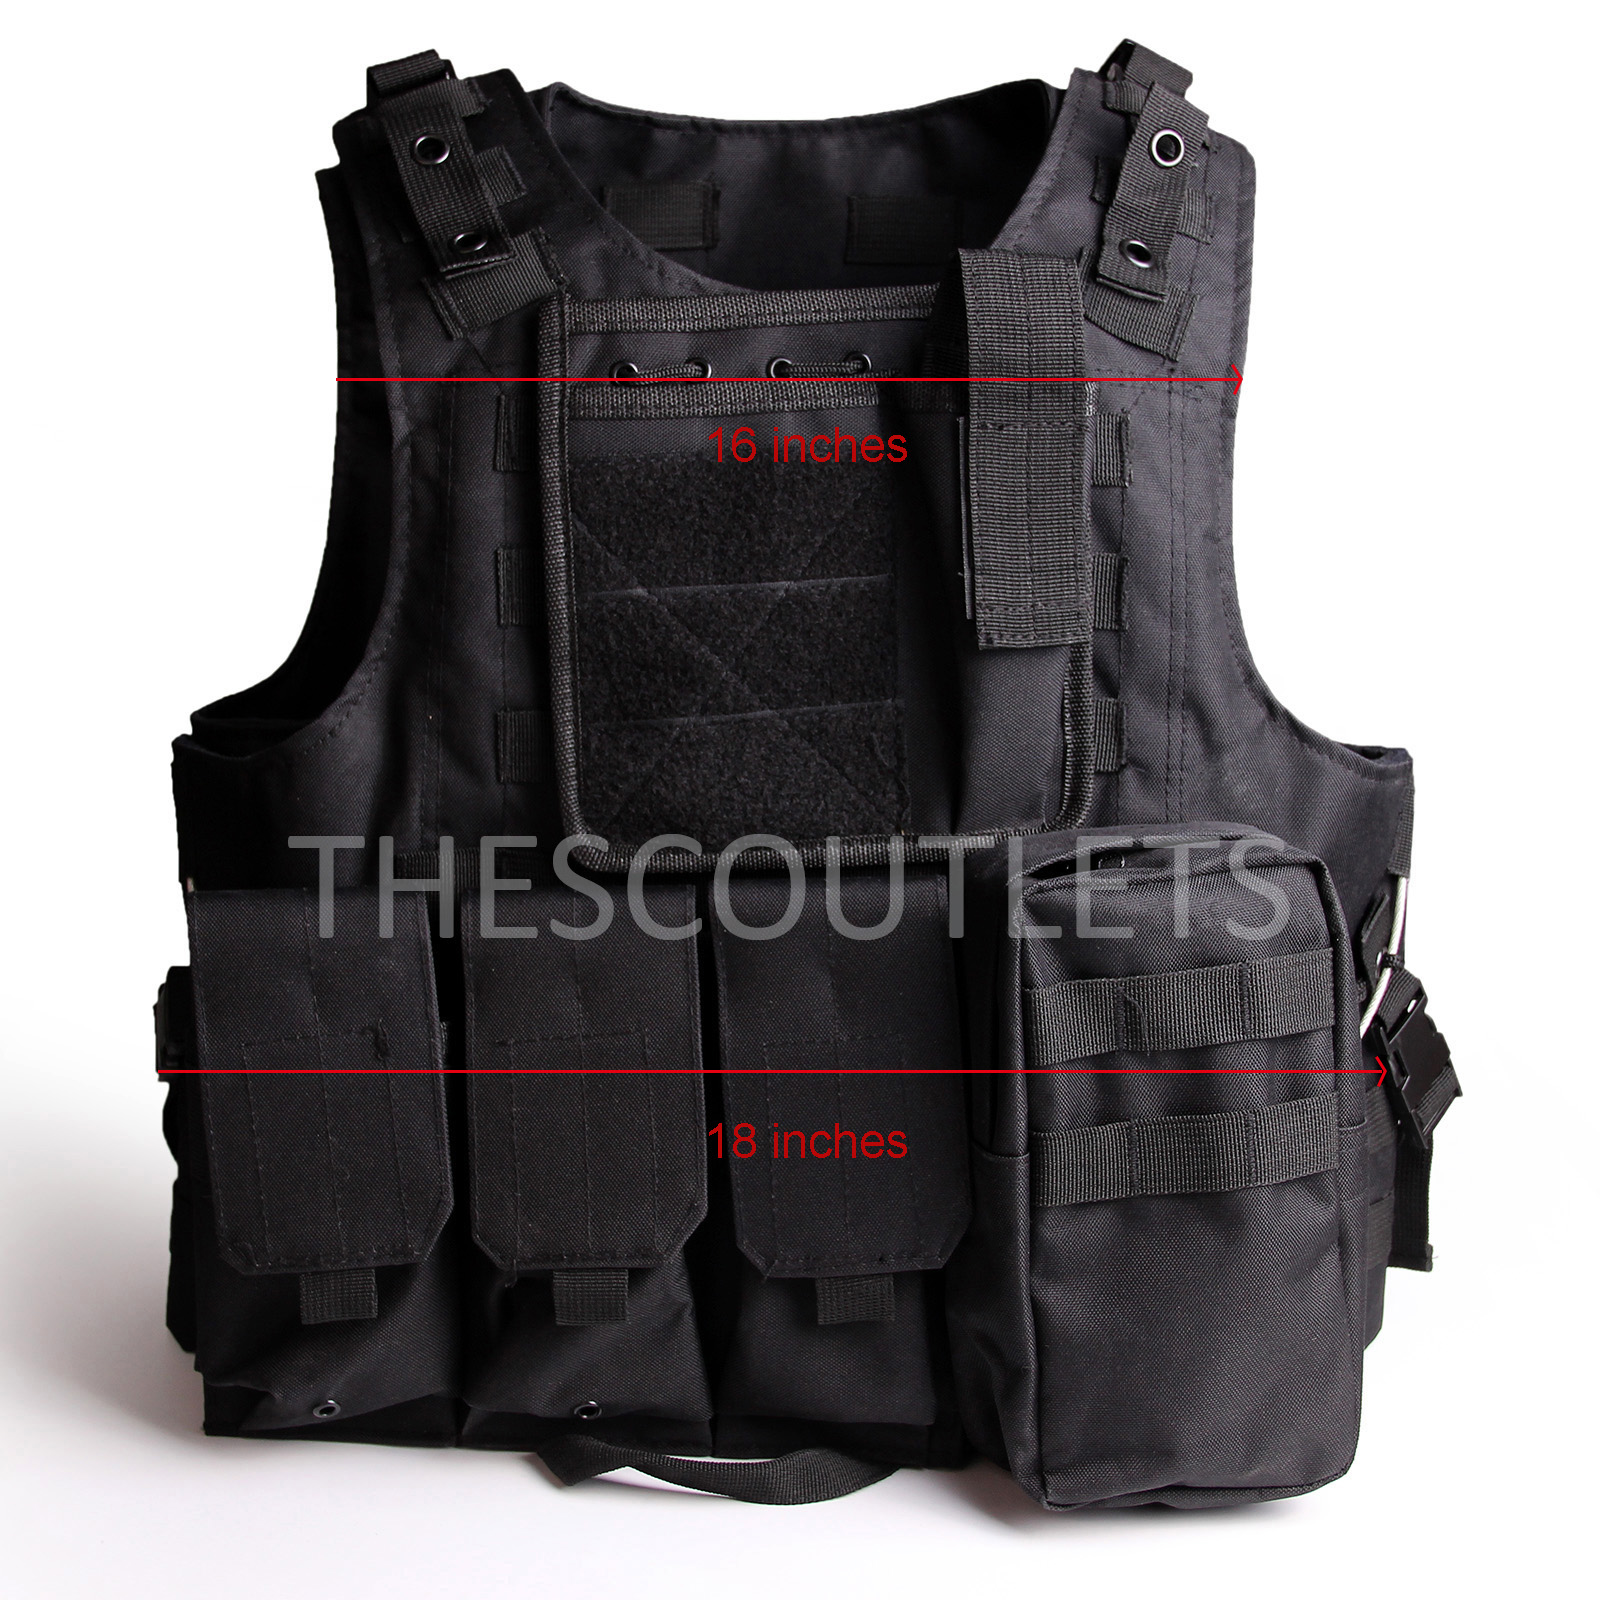 Military-Tactical-Paintball-Army-Molle-Carrier-Adjustable-Airsoft-Combat-Vest thumbnail 4